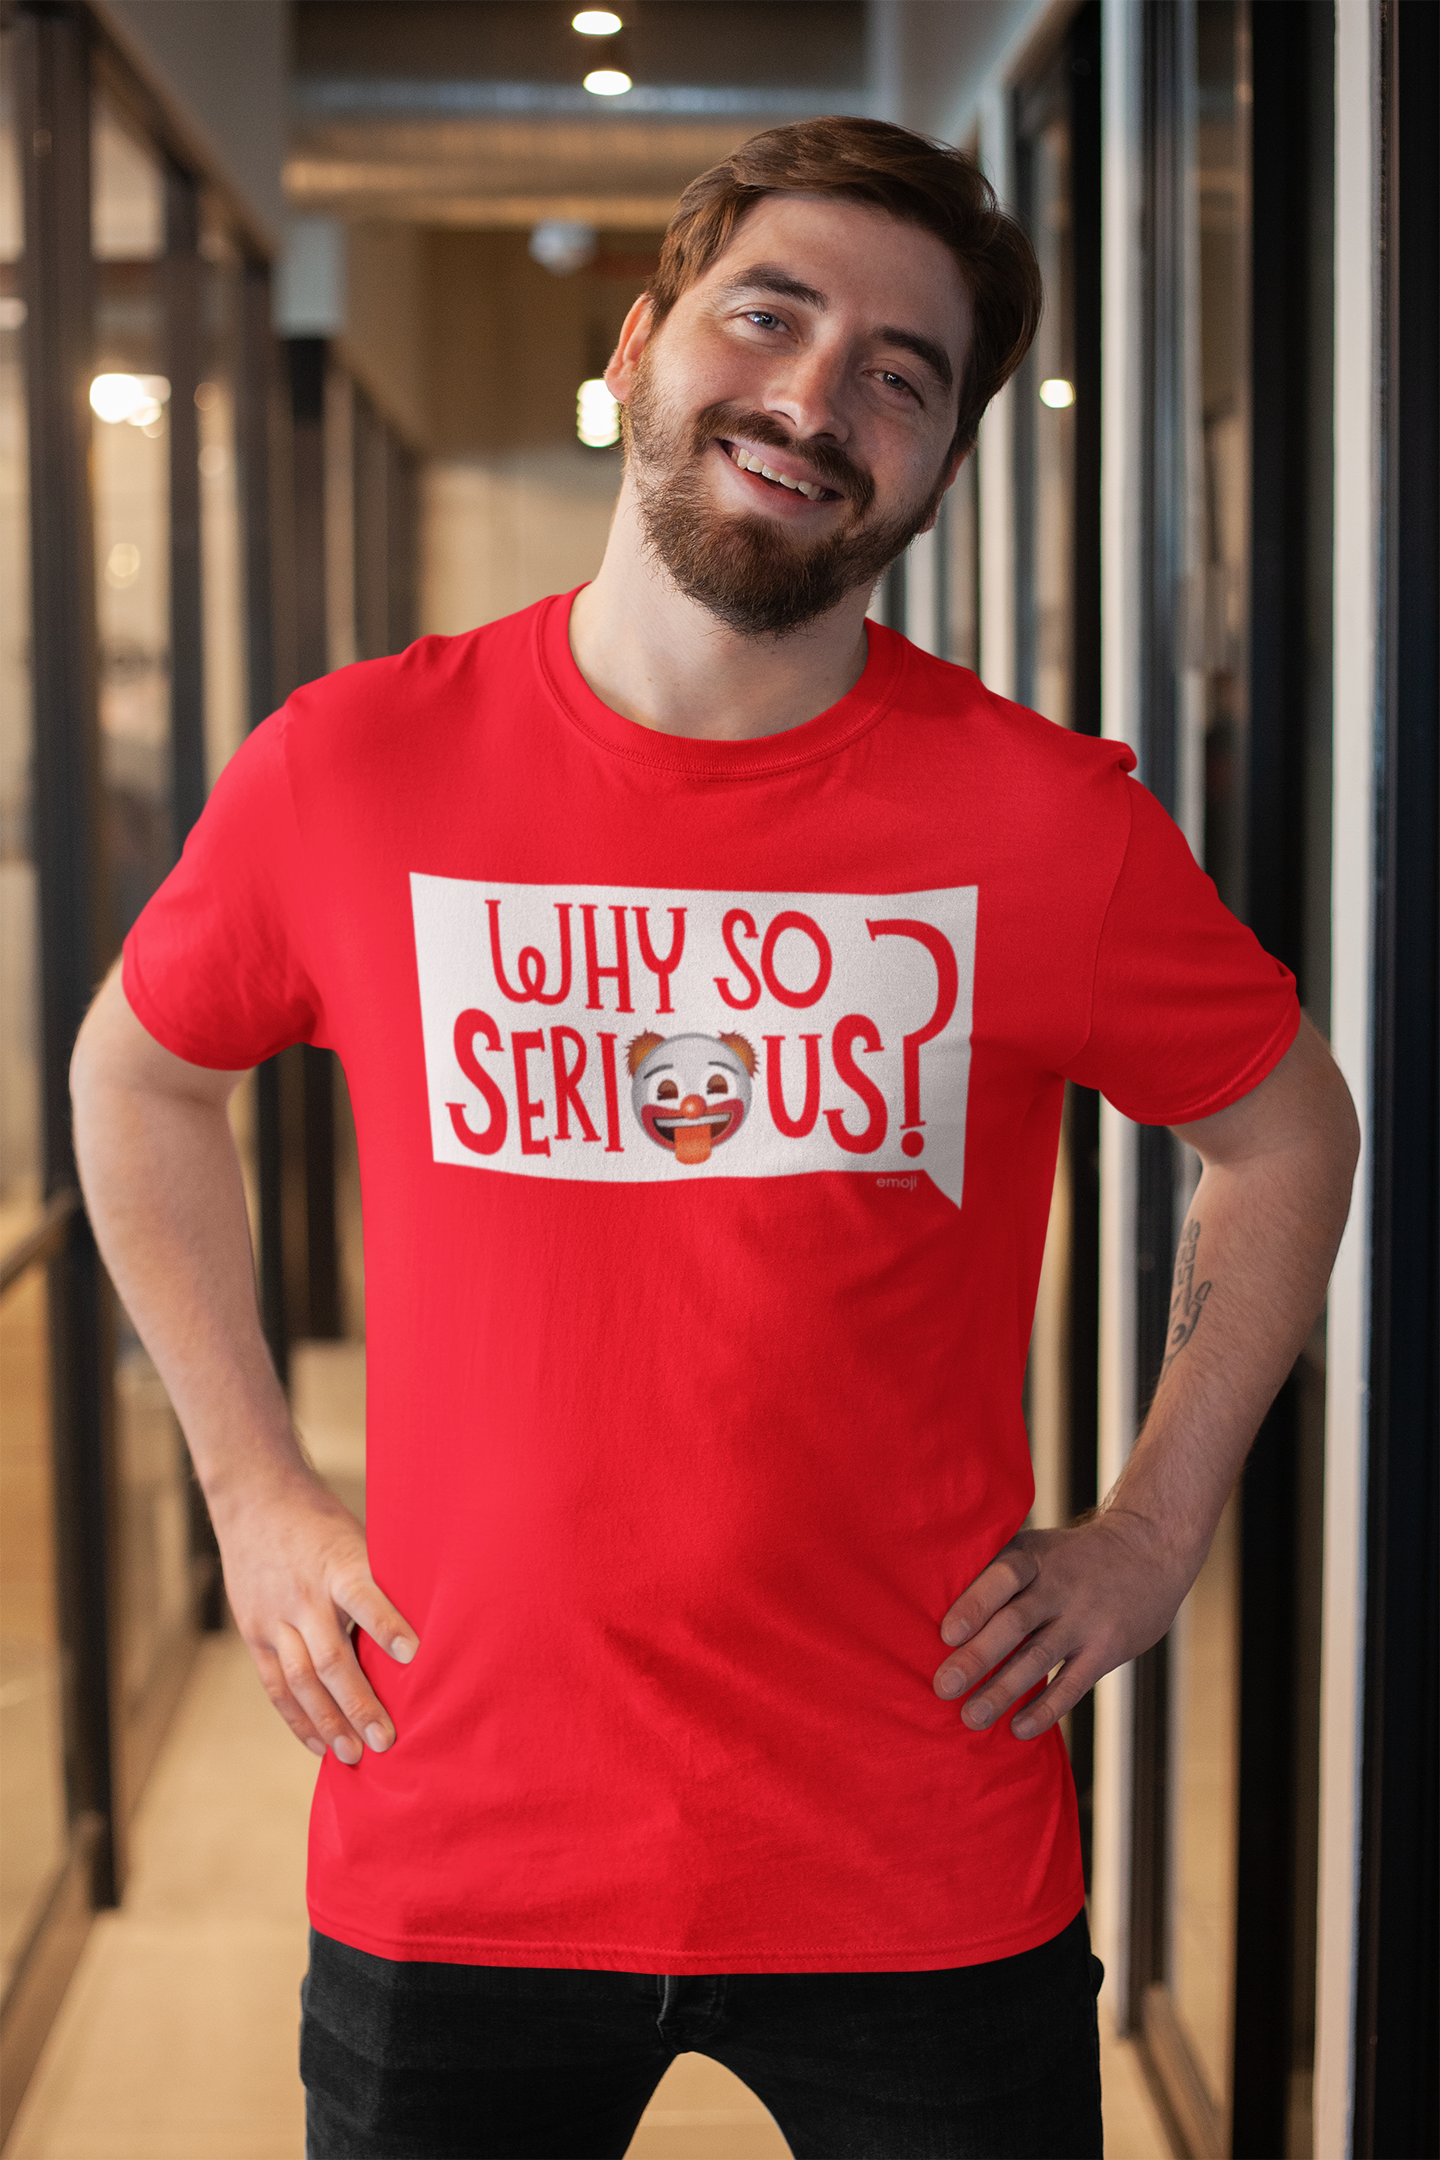 Official Licensed emoji Printed T-Shirt for Men - Why So Serious?